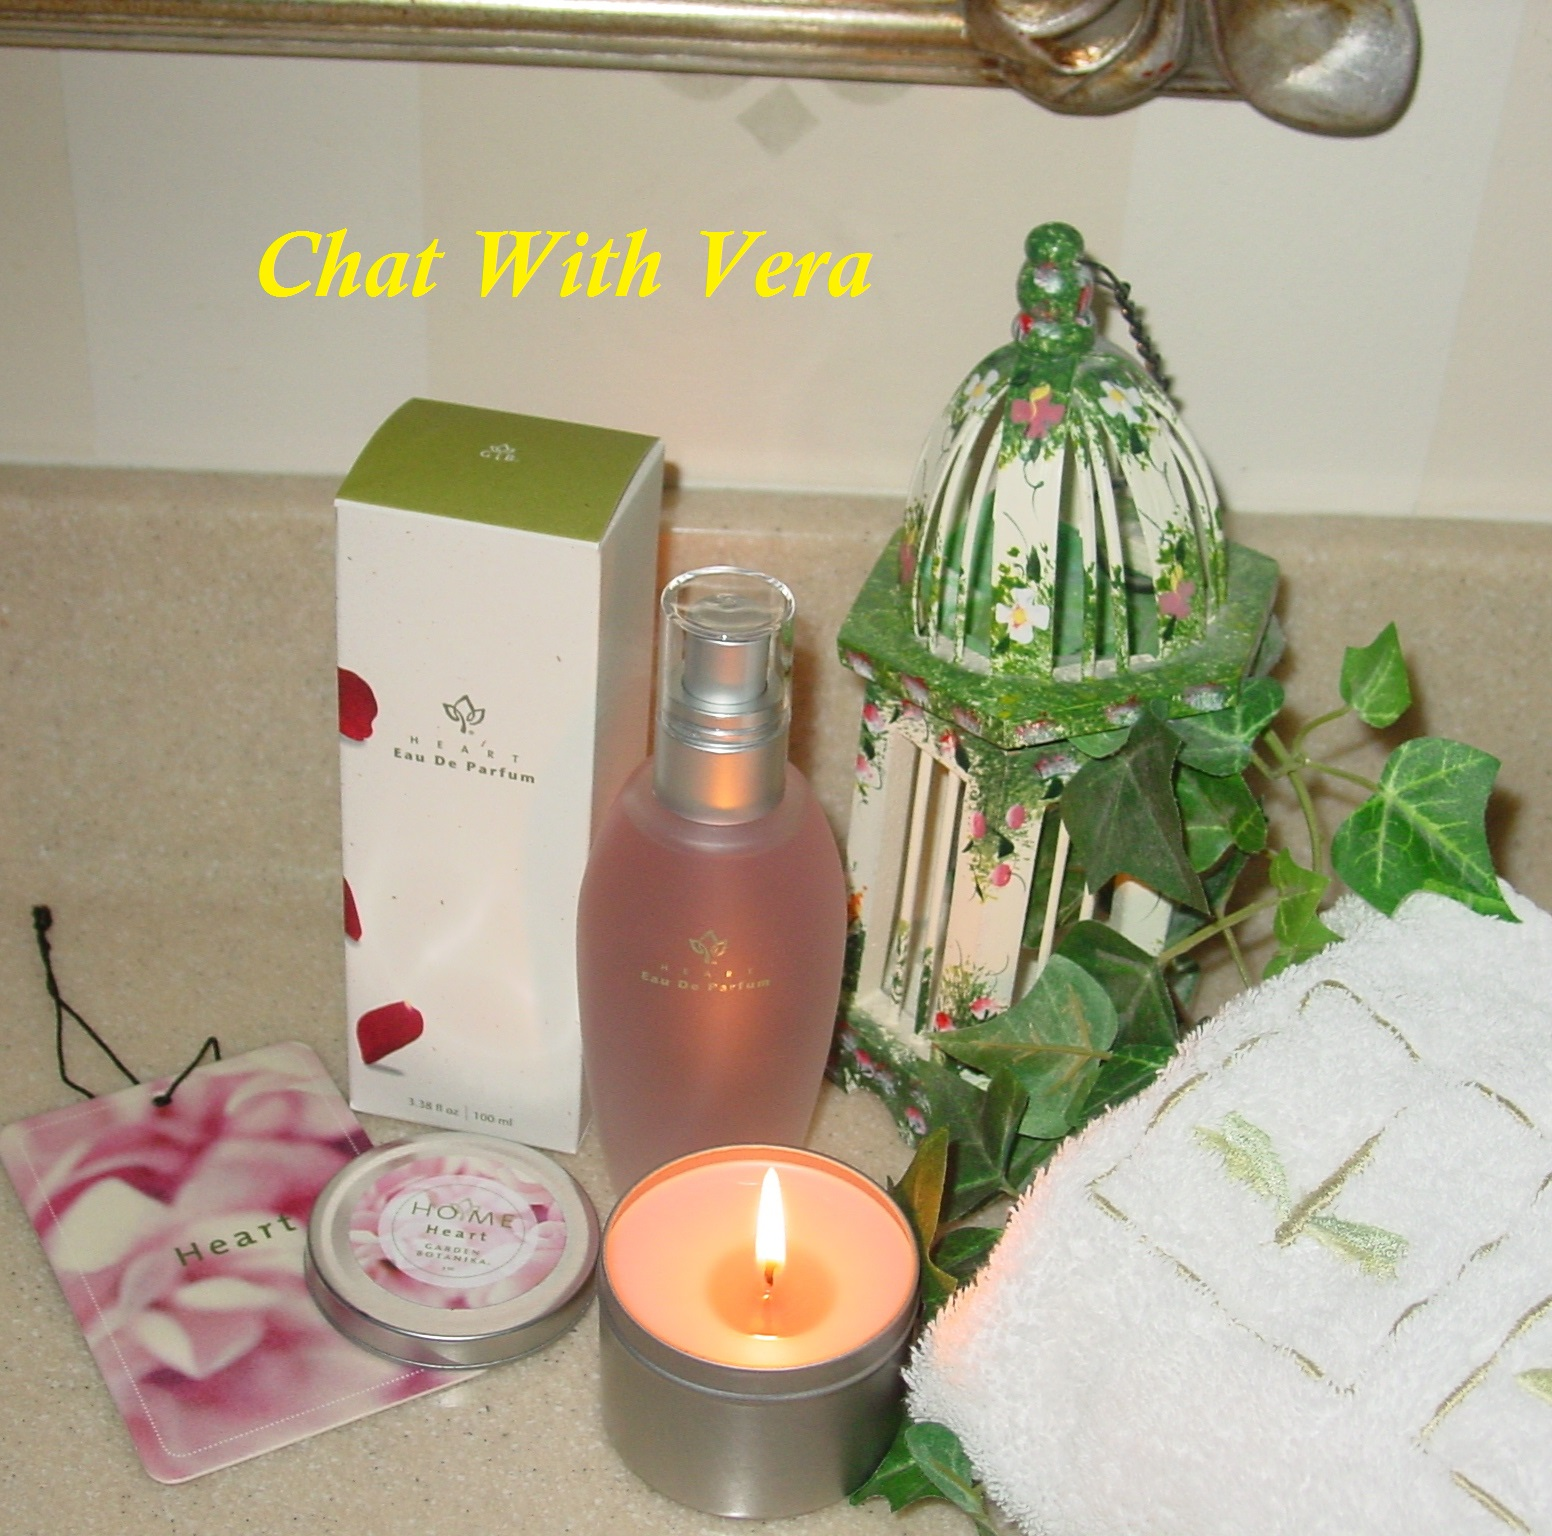 Chat with Vera Romance the fragrance Heart from Garden